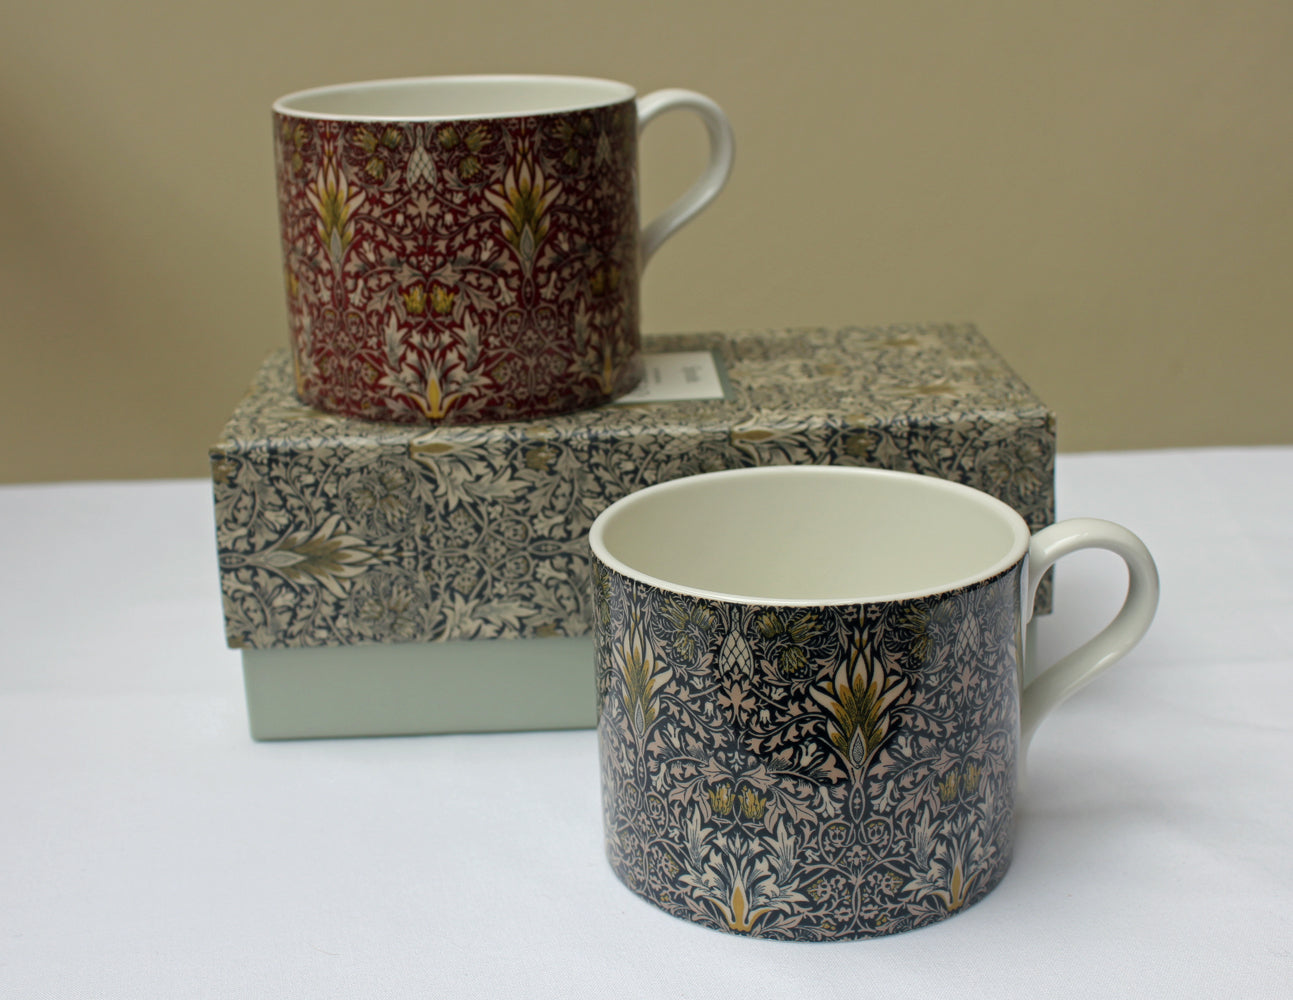 Spode William Morris Snakeshead Mugs, Set of 2 in a Gift Box